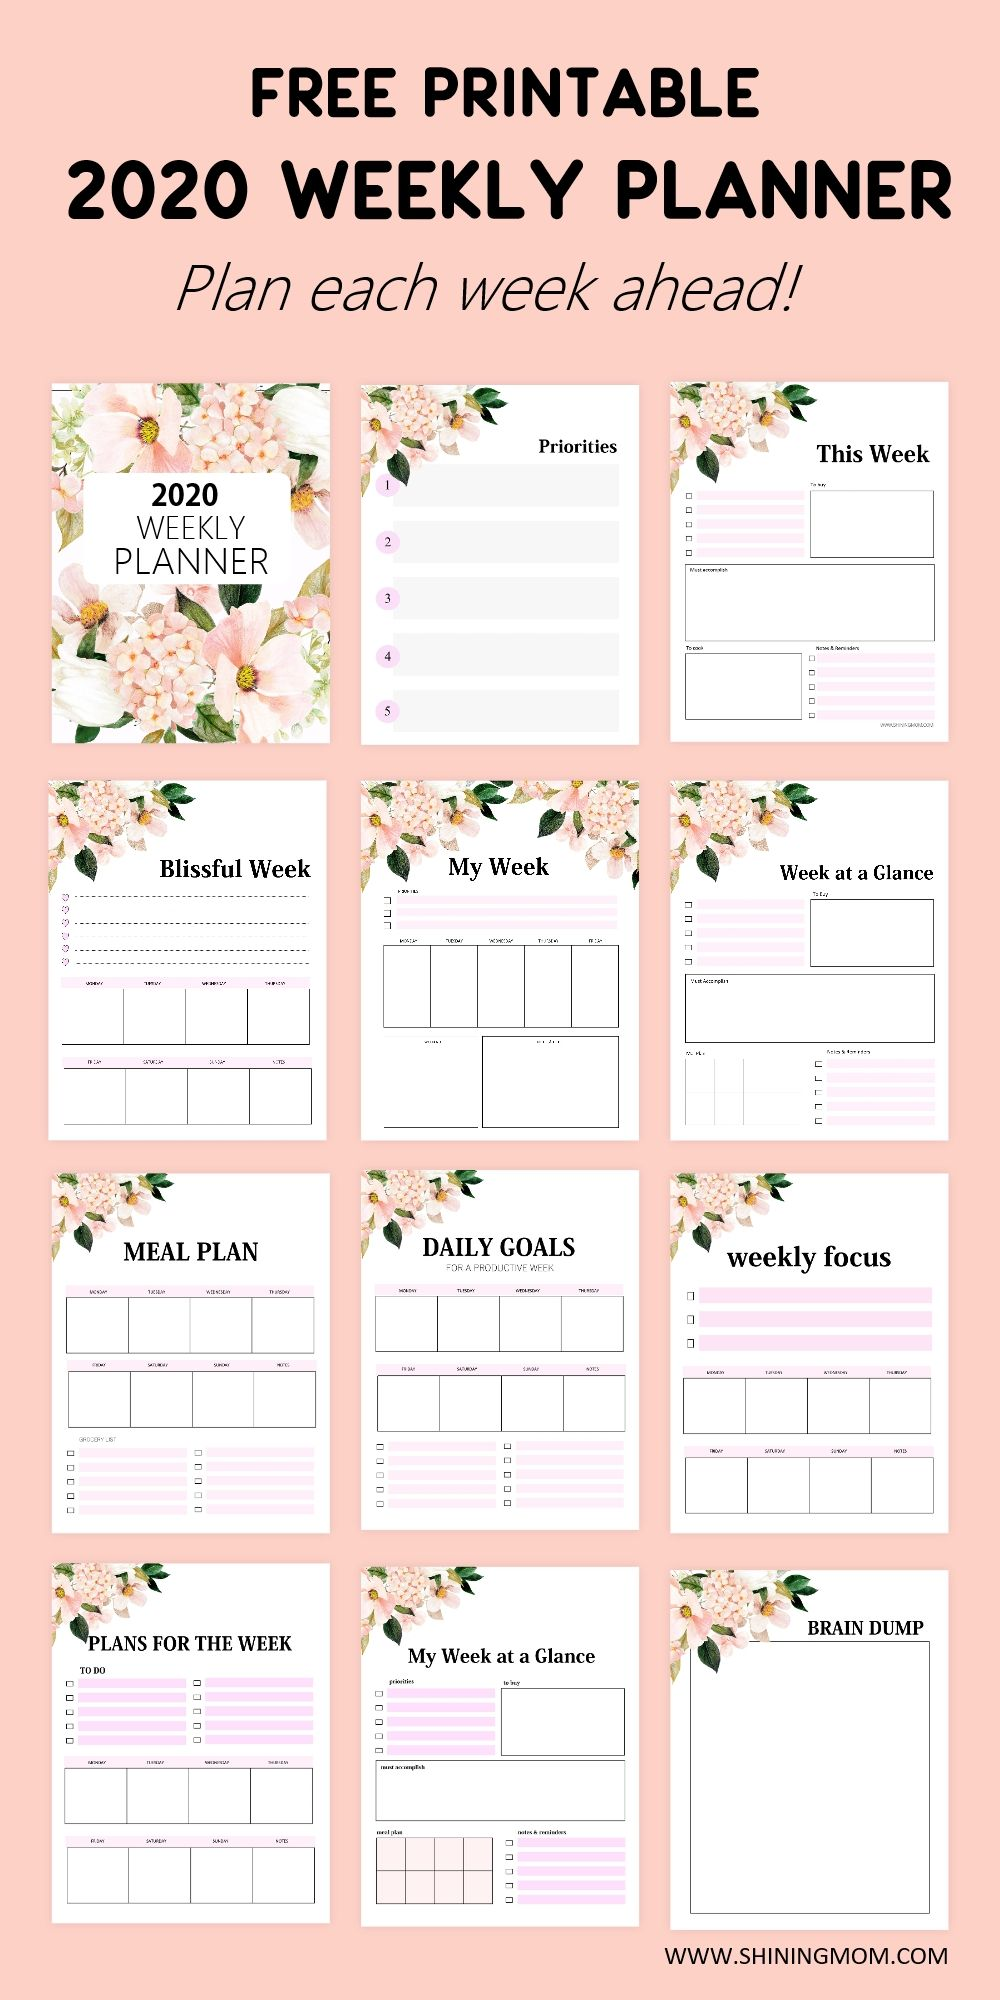 Plan your week in style with our gorgeous weekly planner 2020 printables for free! Set your weekly goals, organize your weekly plans, and so much more. Download for free! #weeklyplanner #freeprintable #planner #2020 #planner2020